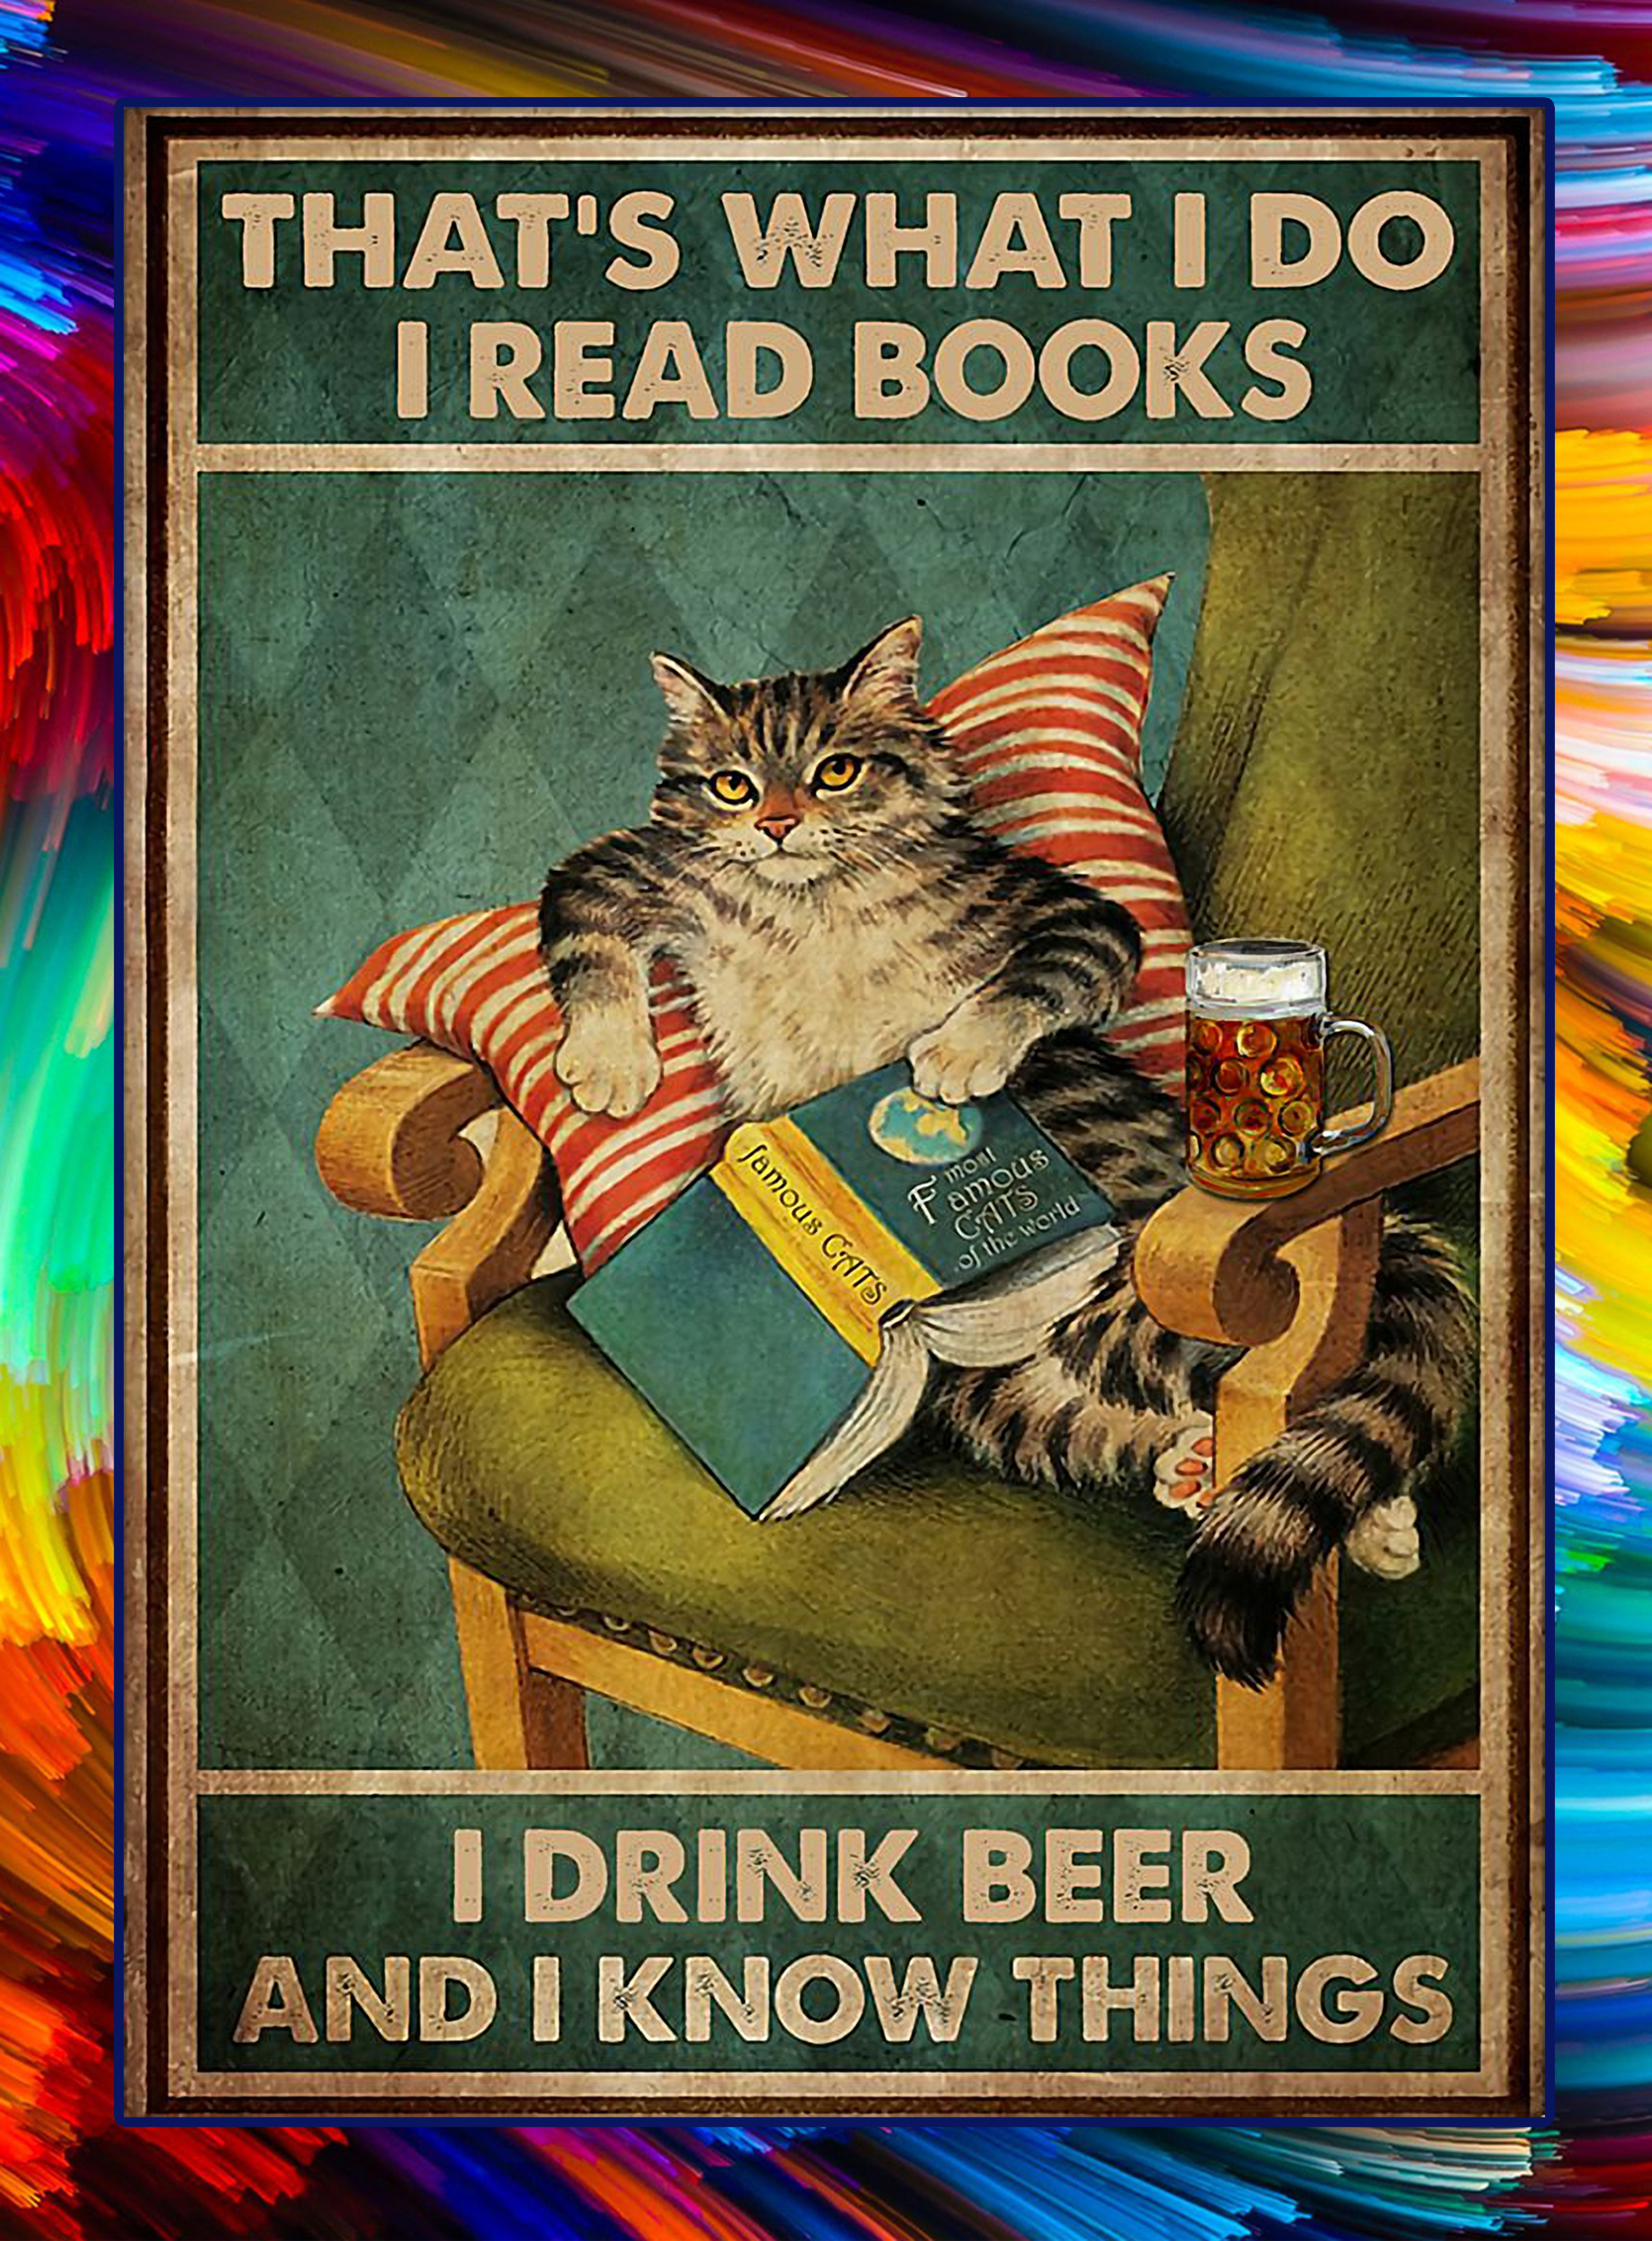 Cat that's what I do I read books I drink beer and I know things poster - A4